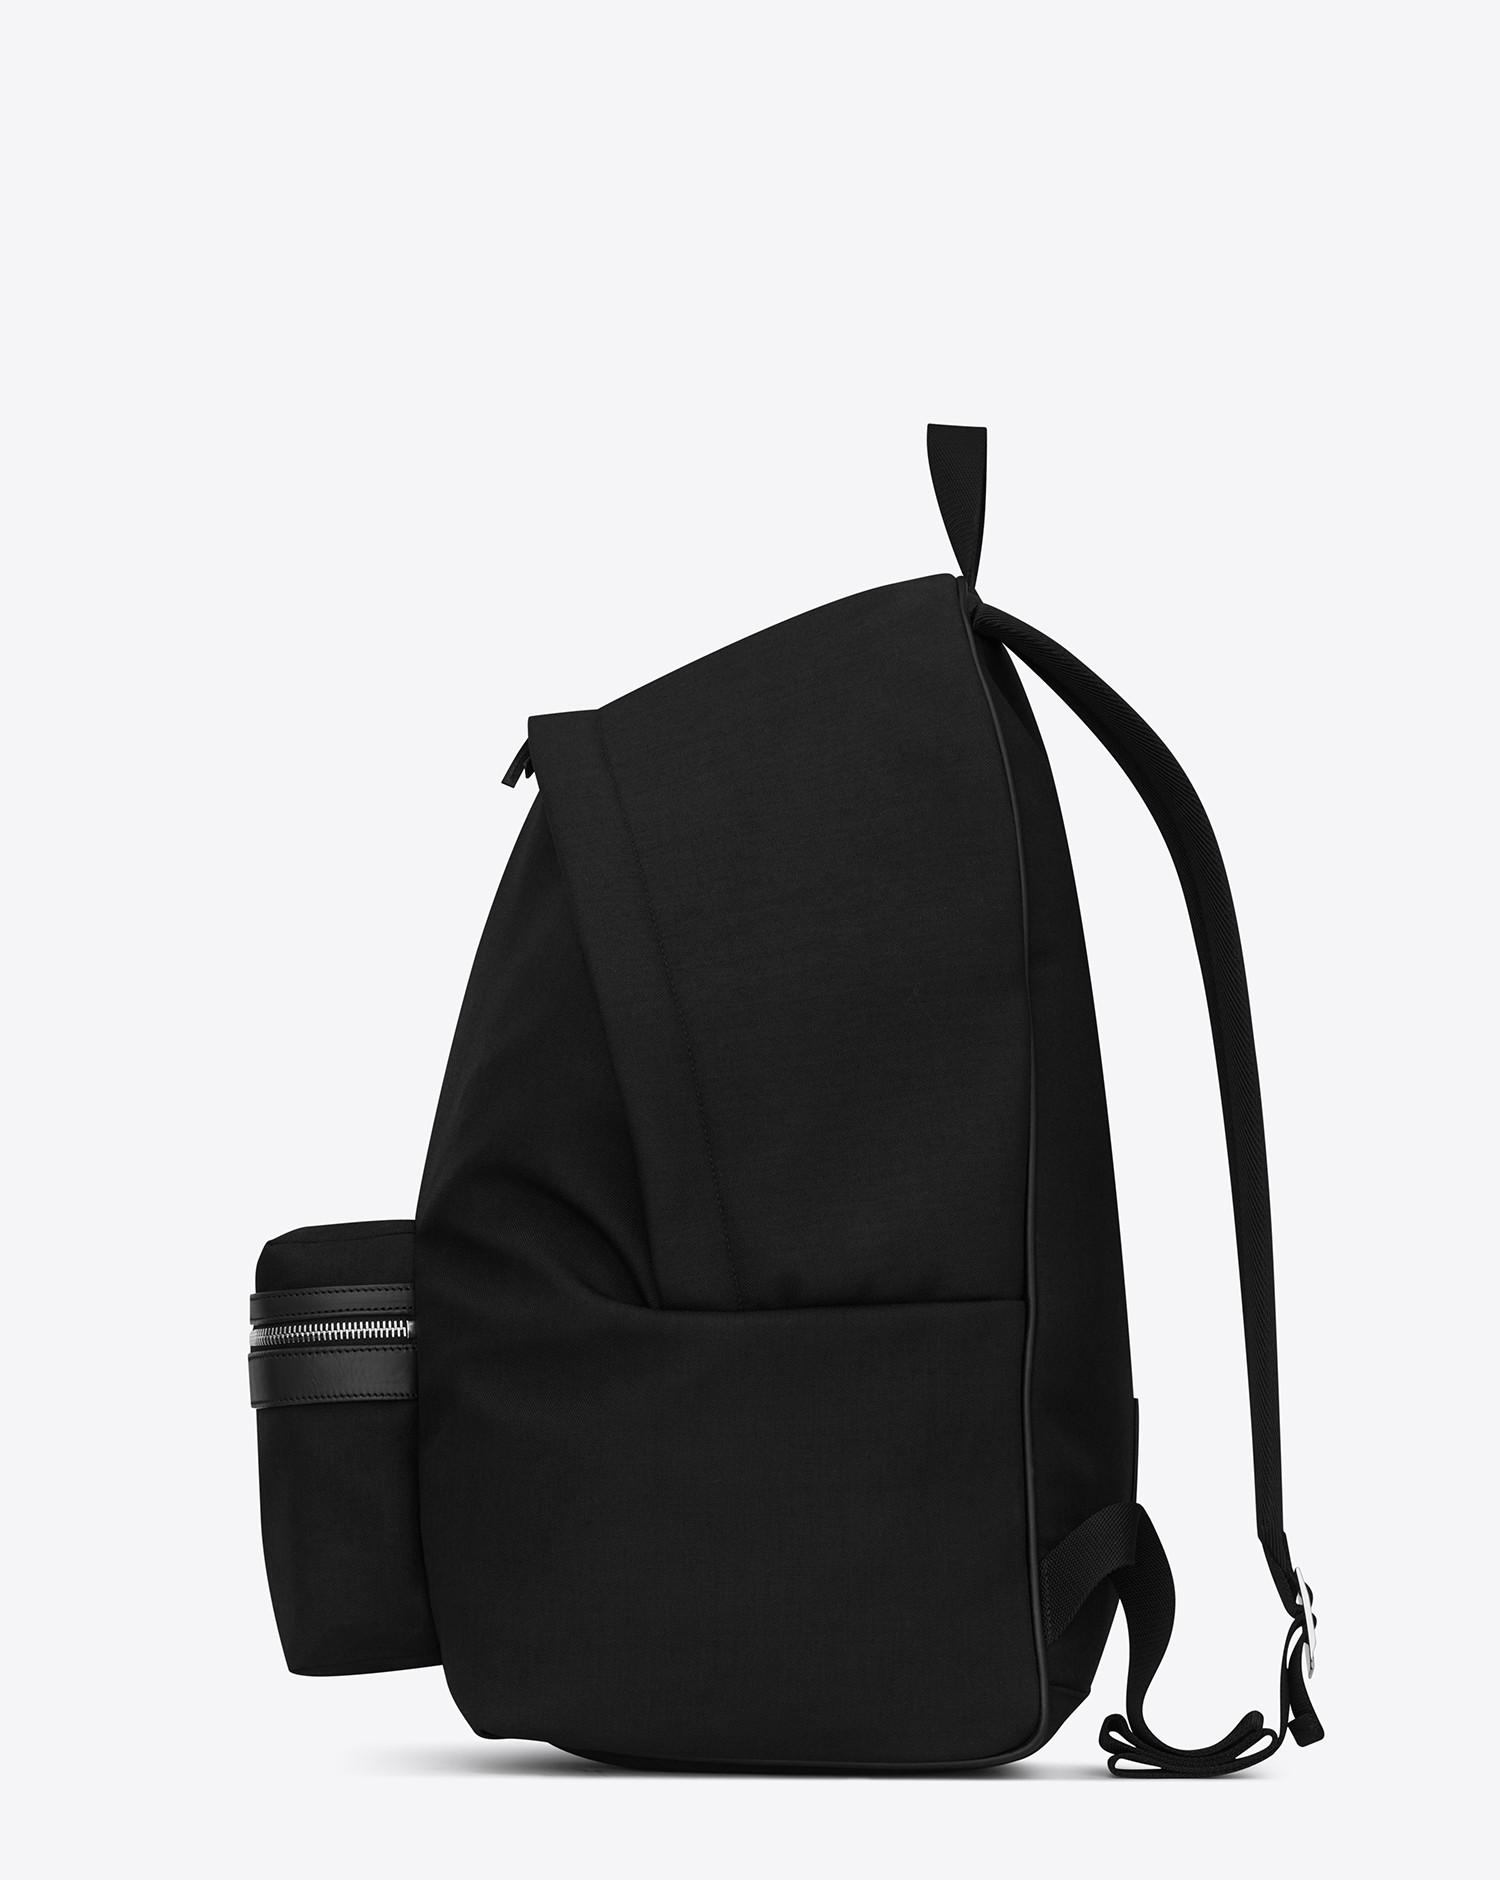 6c13c11215a761 Saint Laurent Giant City Backpack In Black Canvas Nylon And Leather in  Black - Lyst